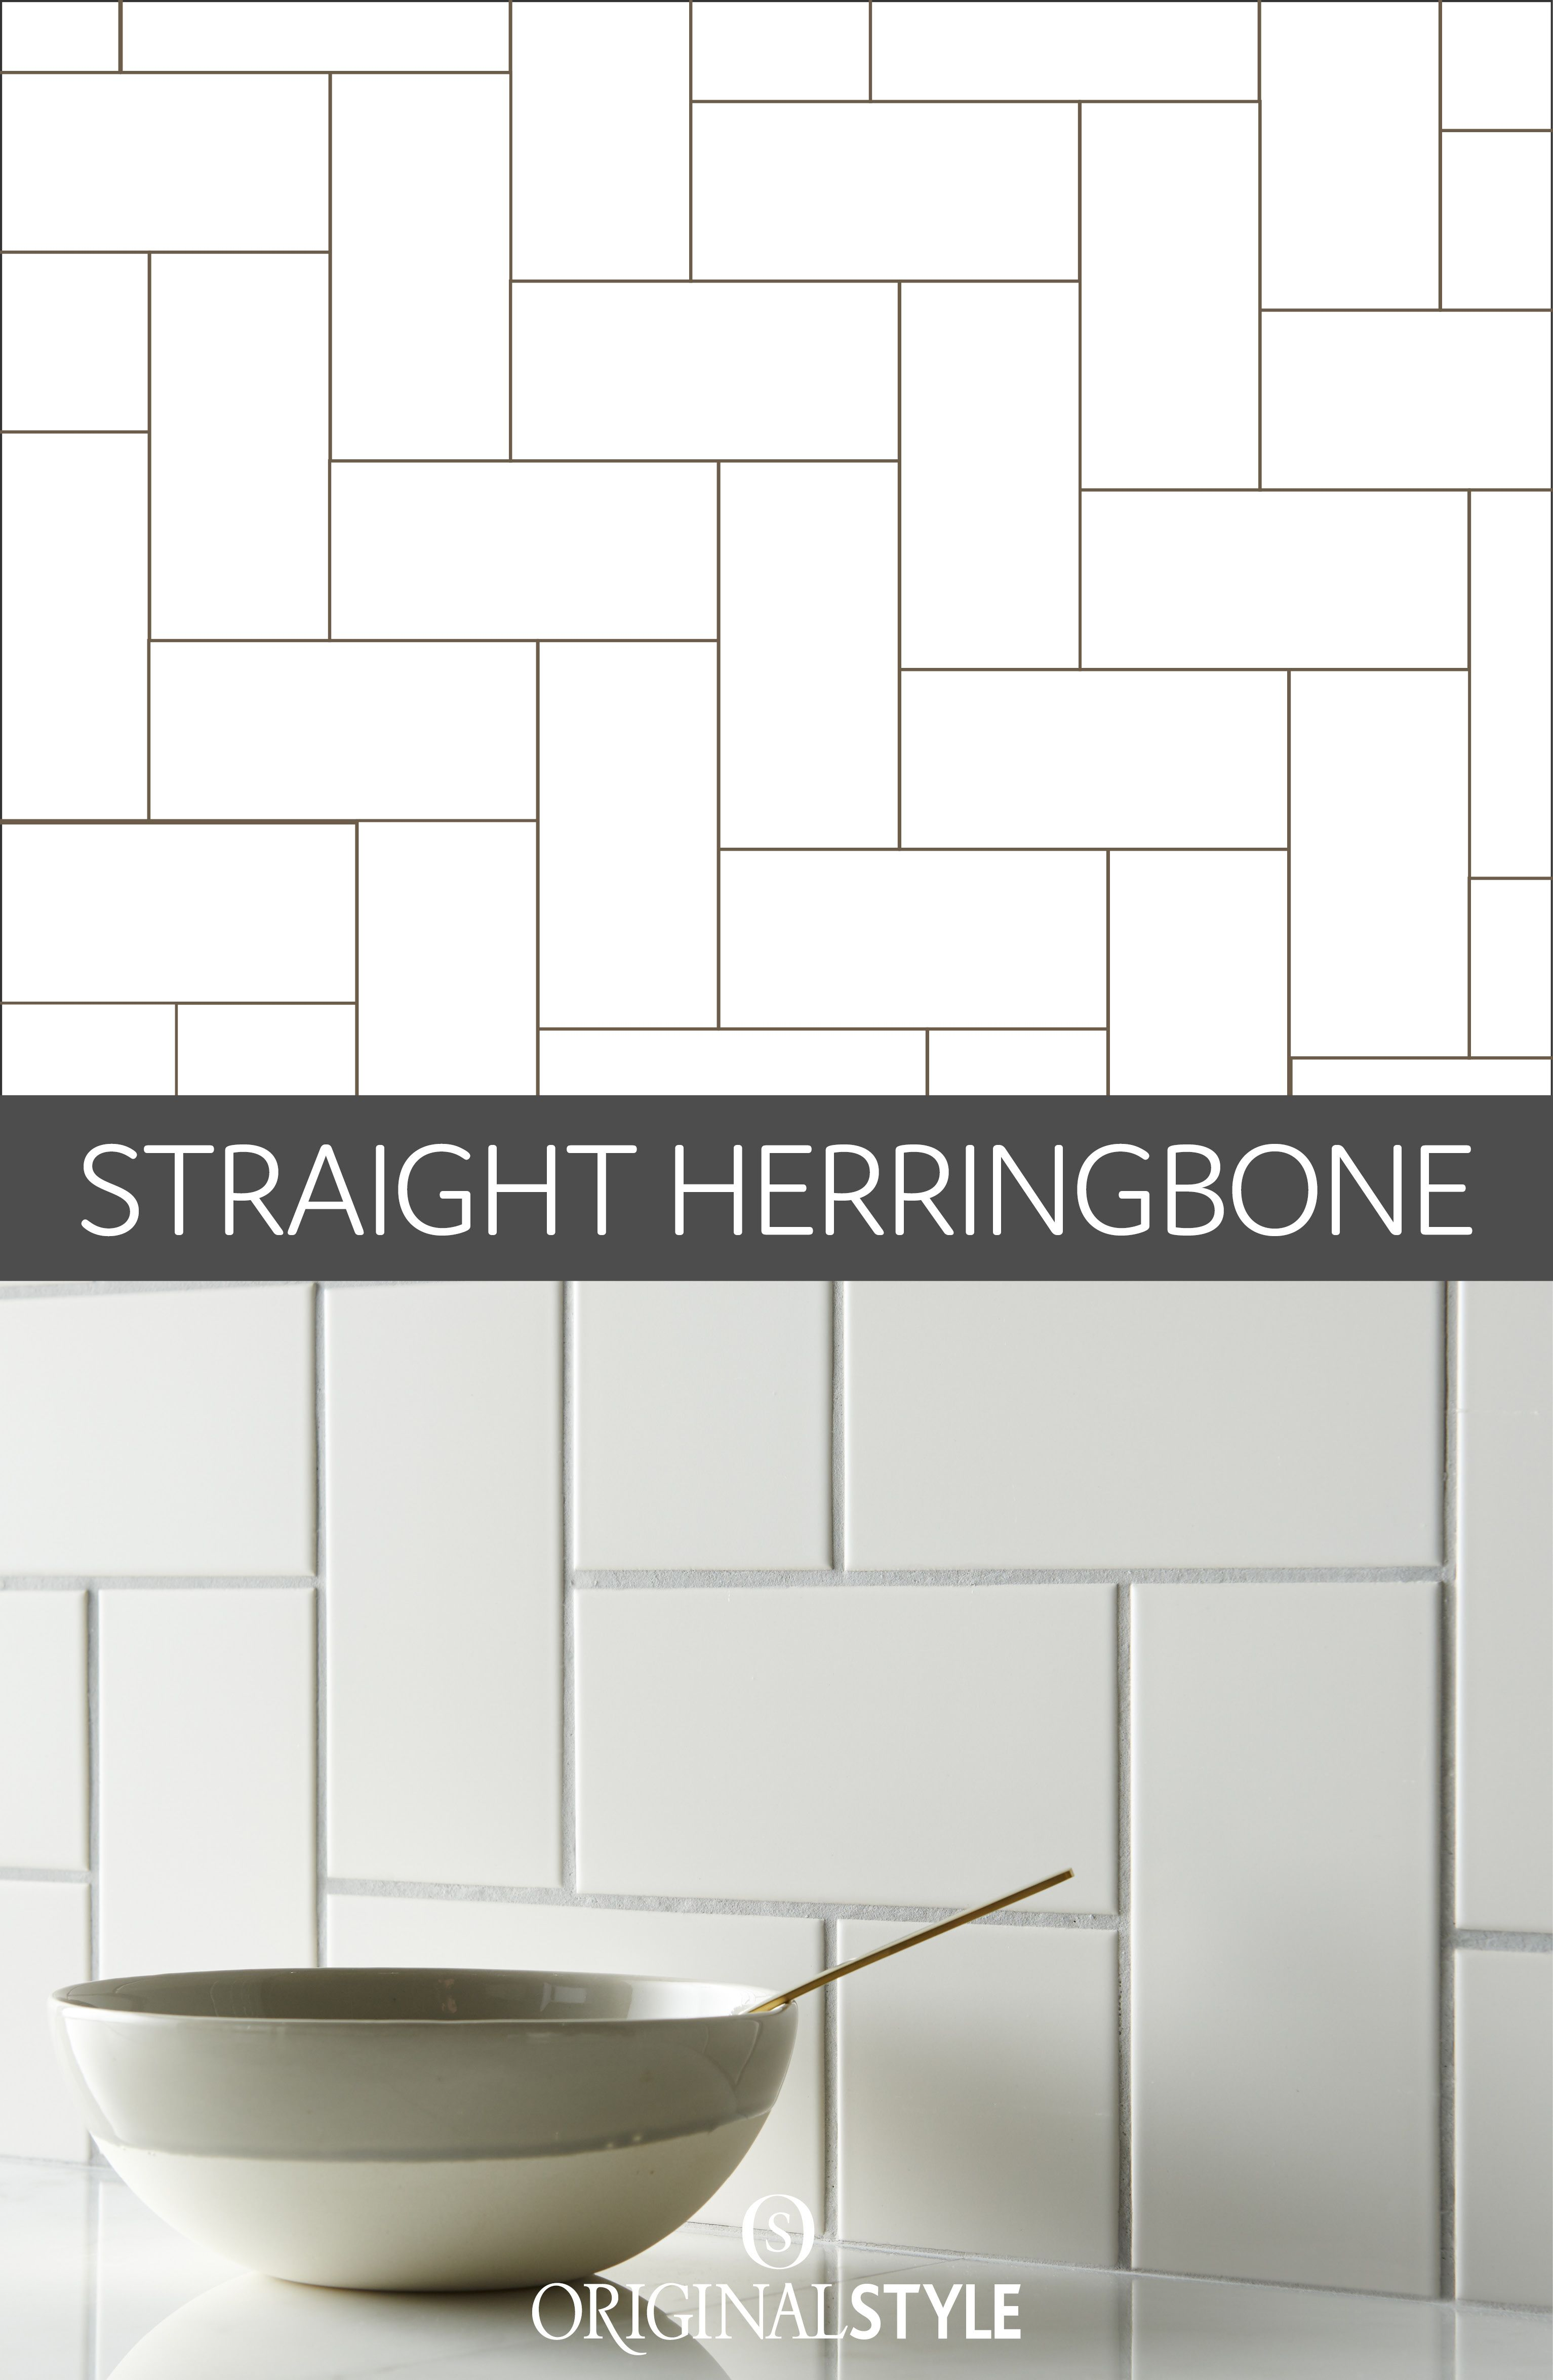 Visual eye candy how to tile a herringbone floor part i - This Take On The Herringbone Pattern Has A More Contemporary Vibe With The Tiles Laid At